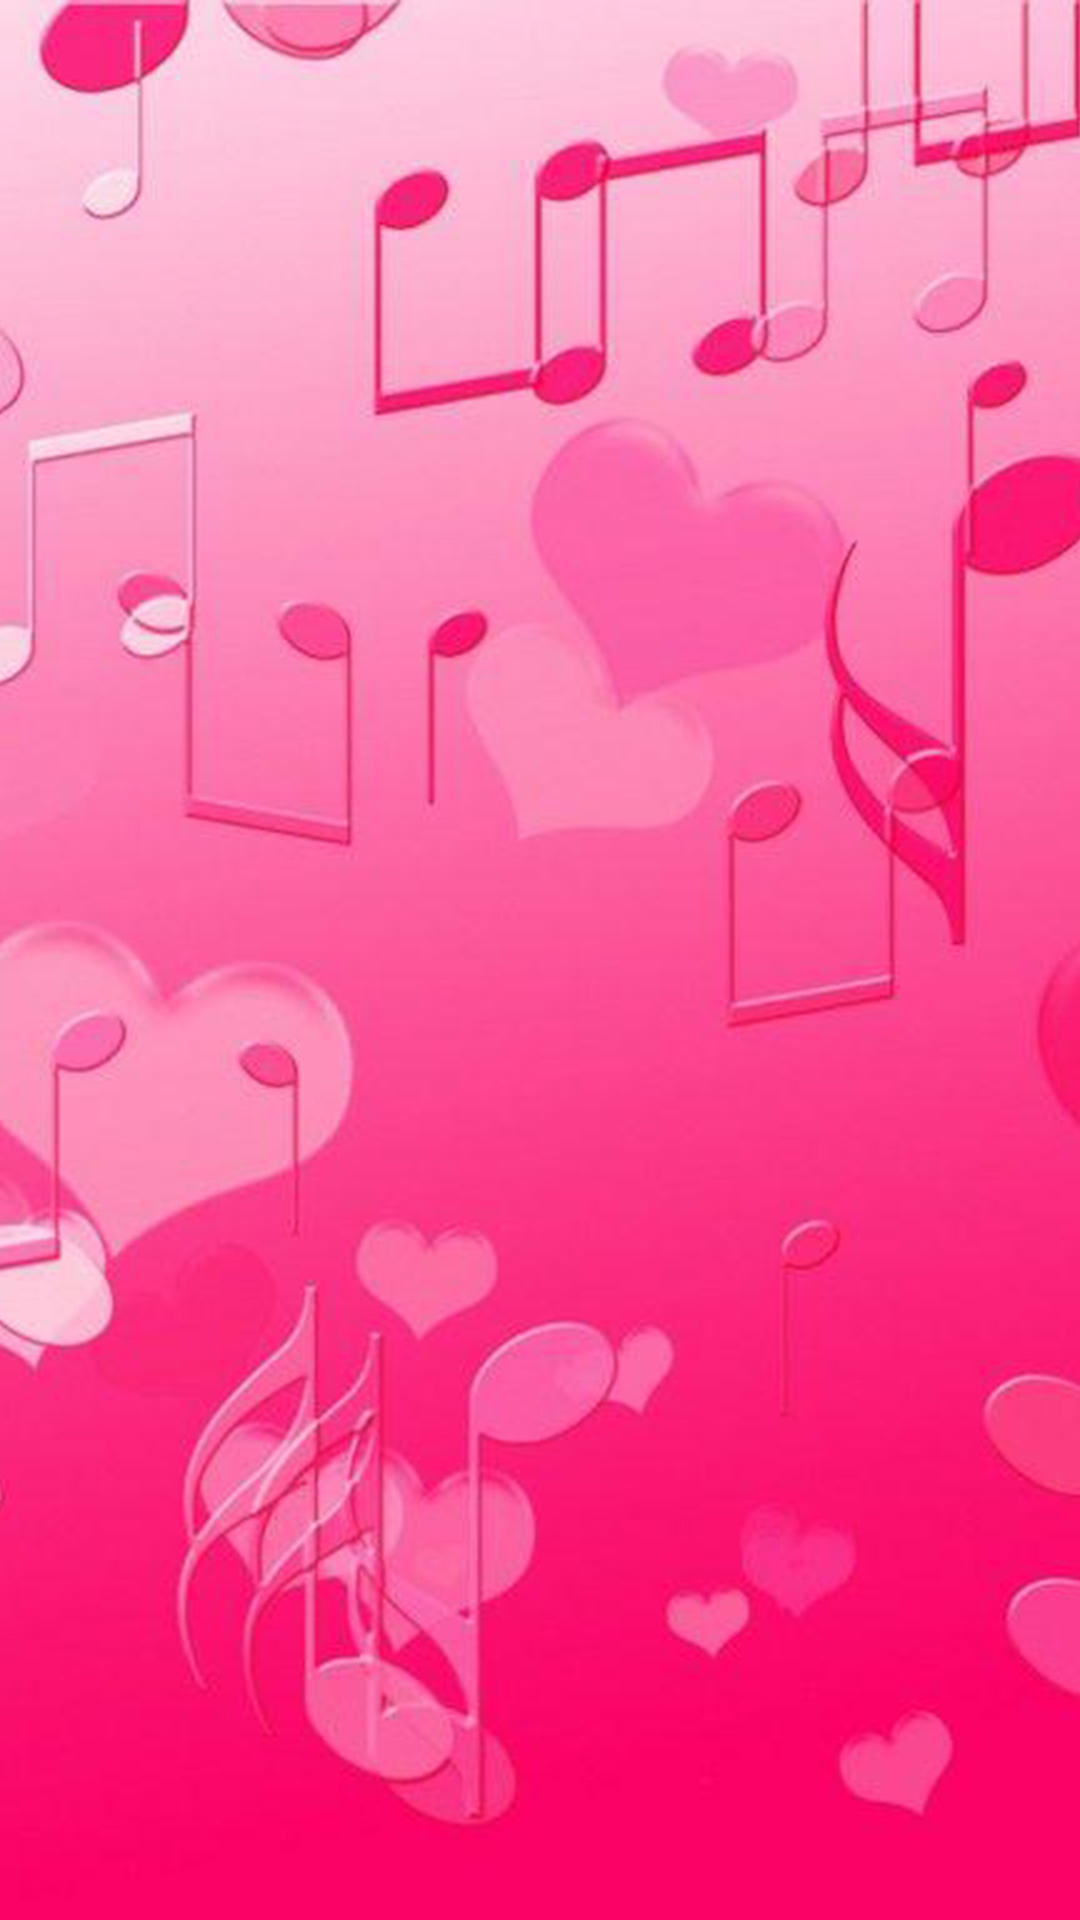 Girly Wallpapers  on the App Store  iTunes  Apple